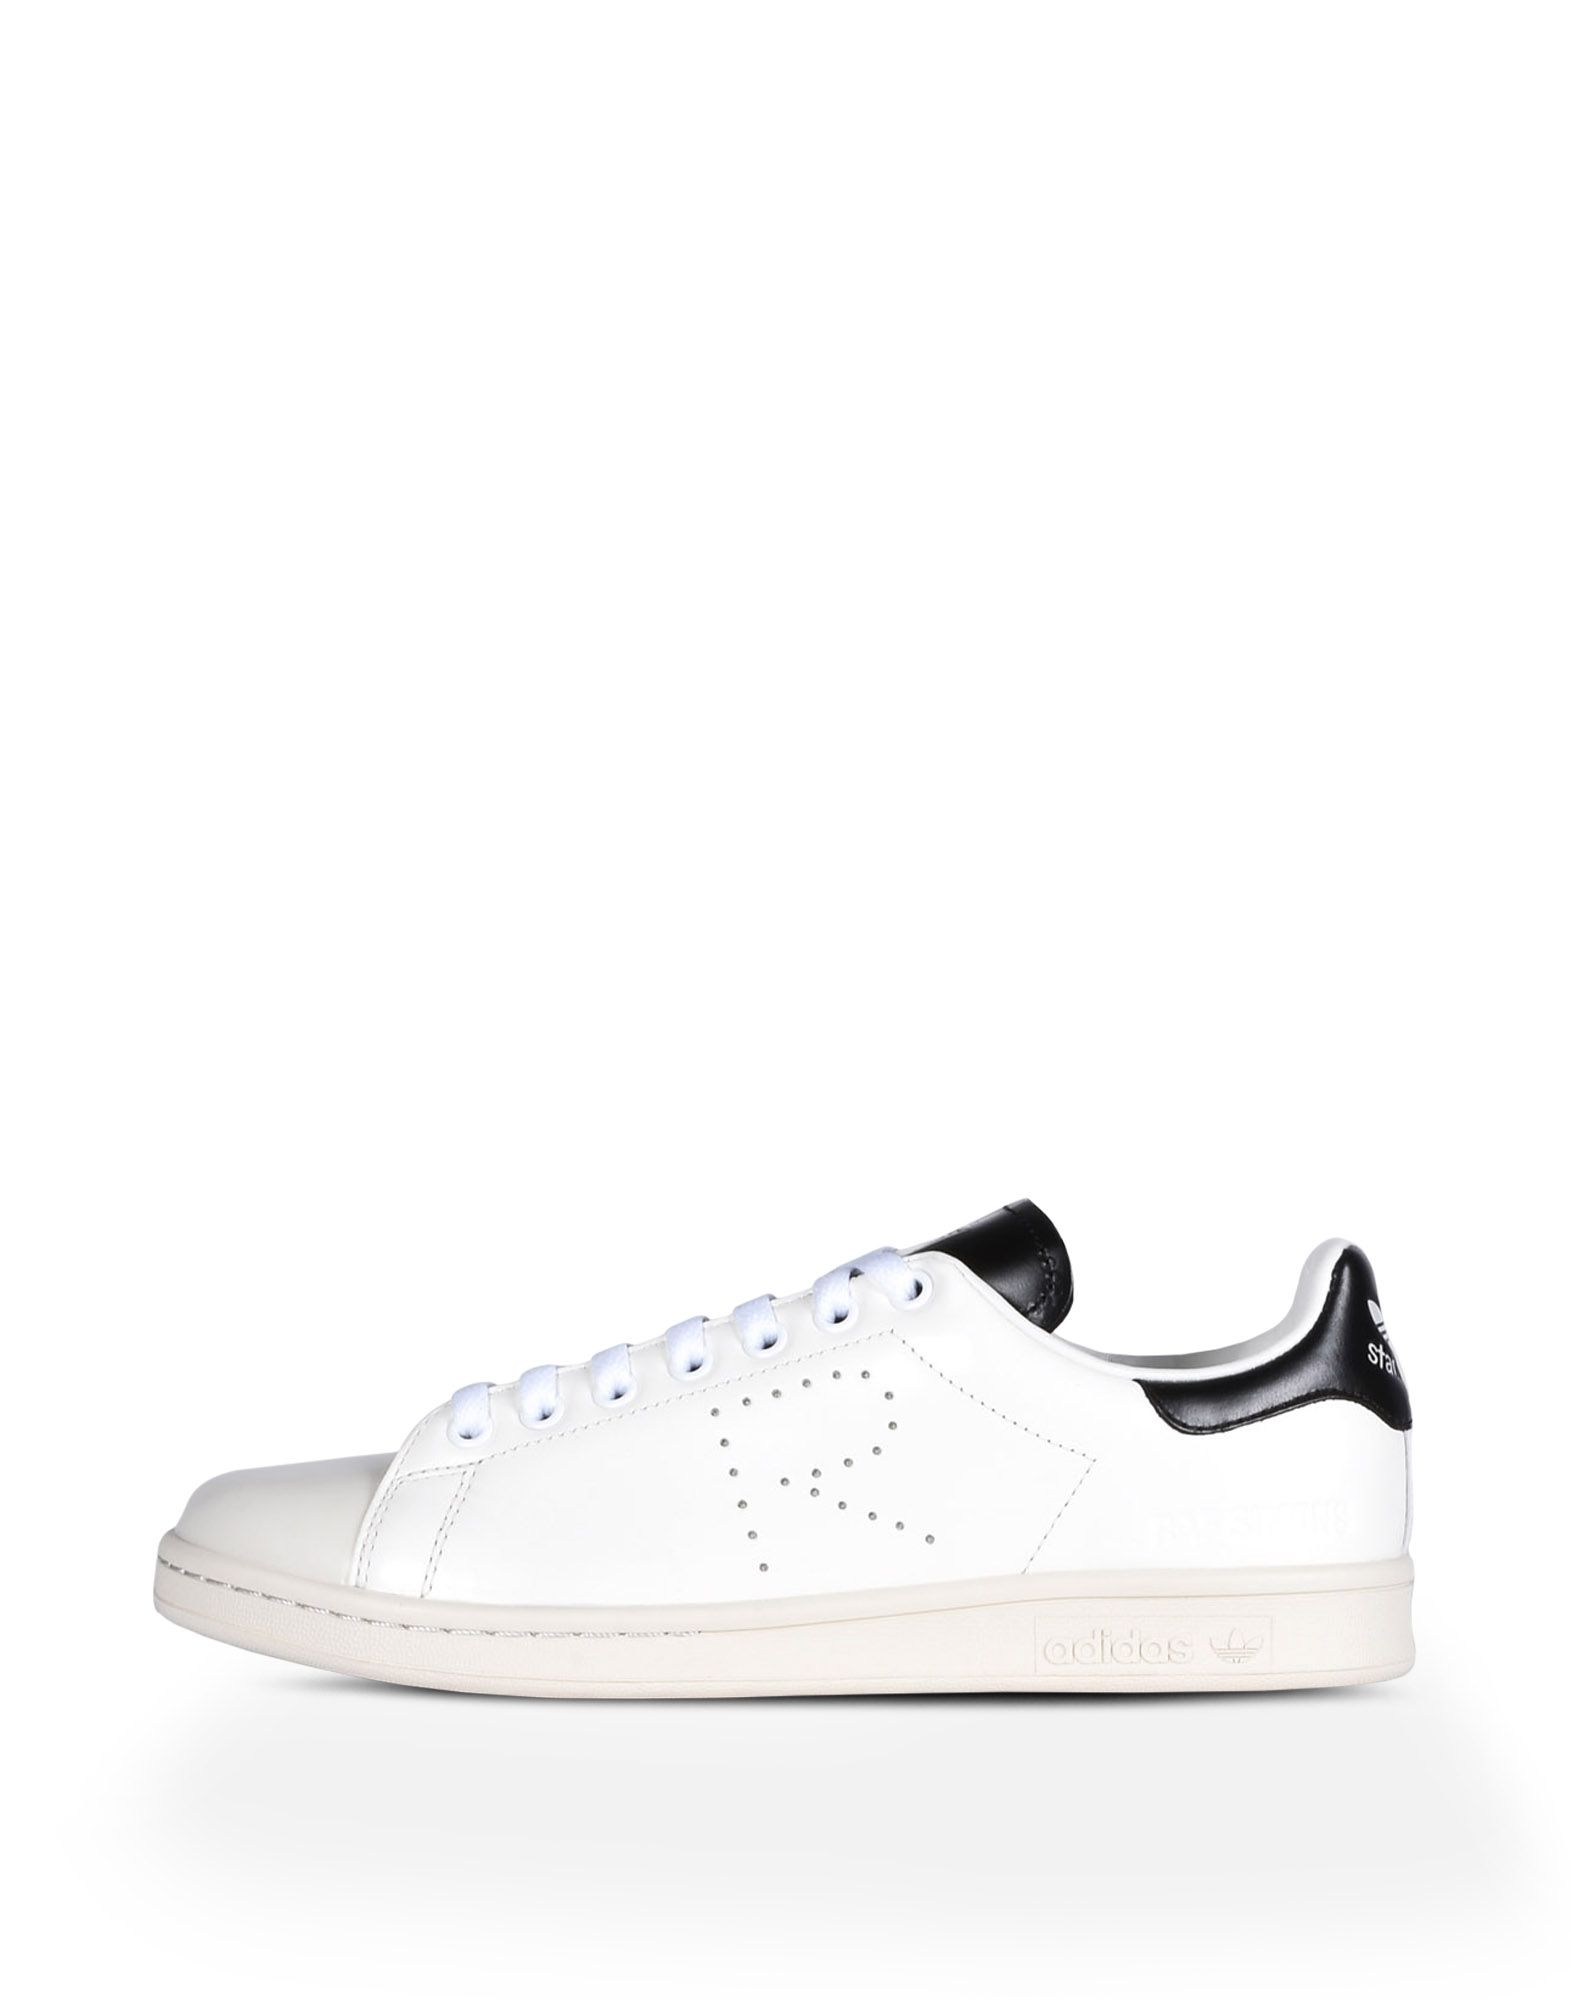 White Stan Smith Trainers adidas by Raf Simons